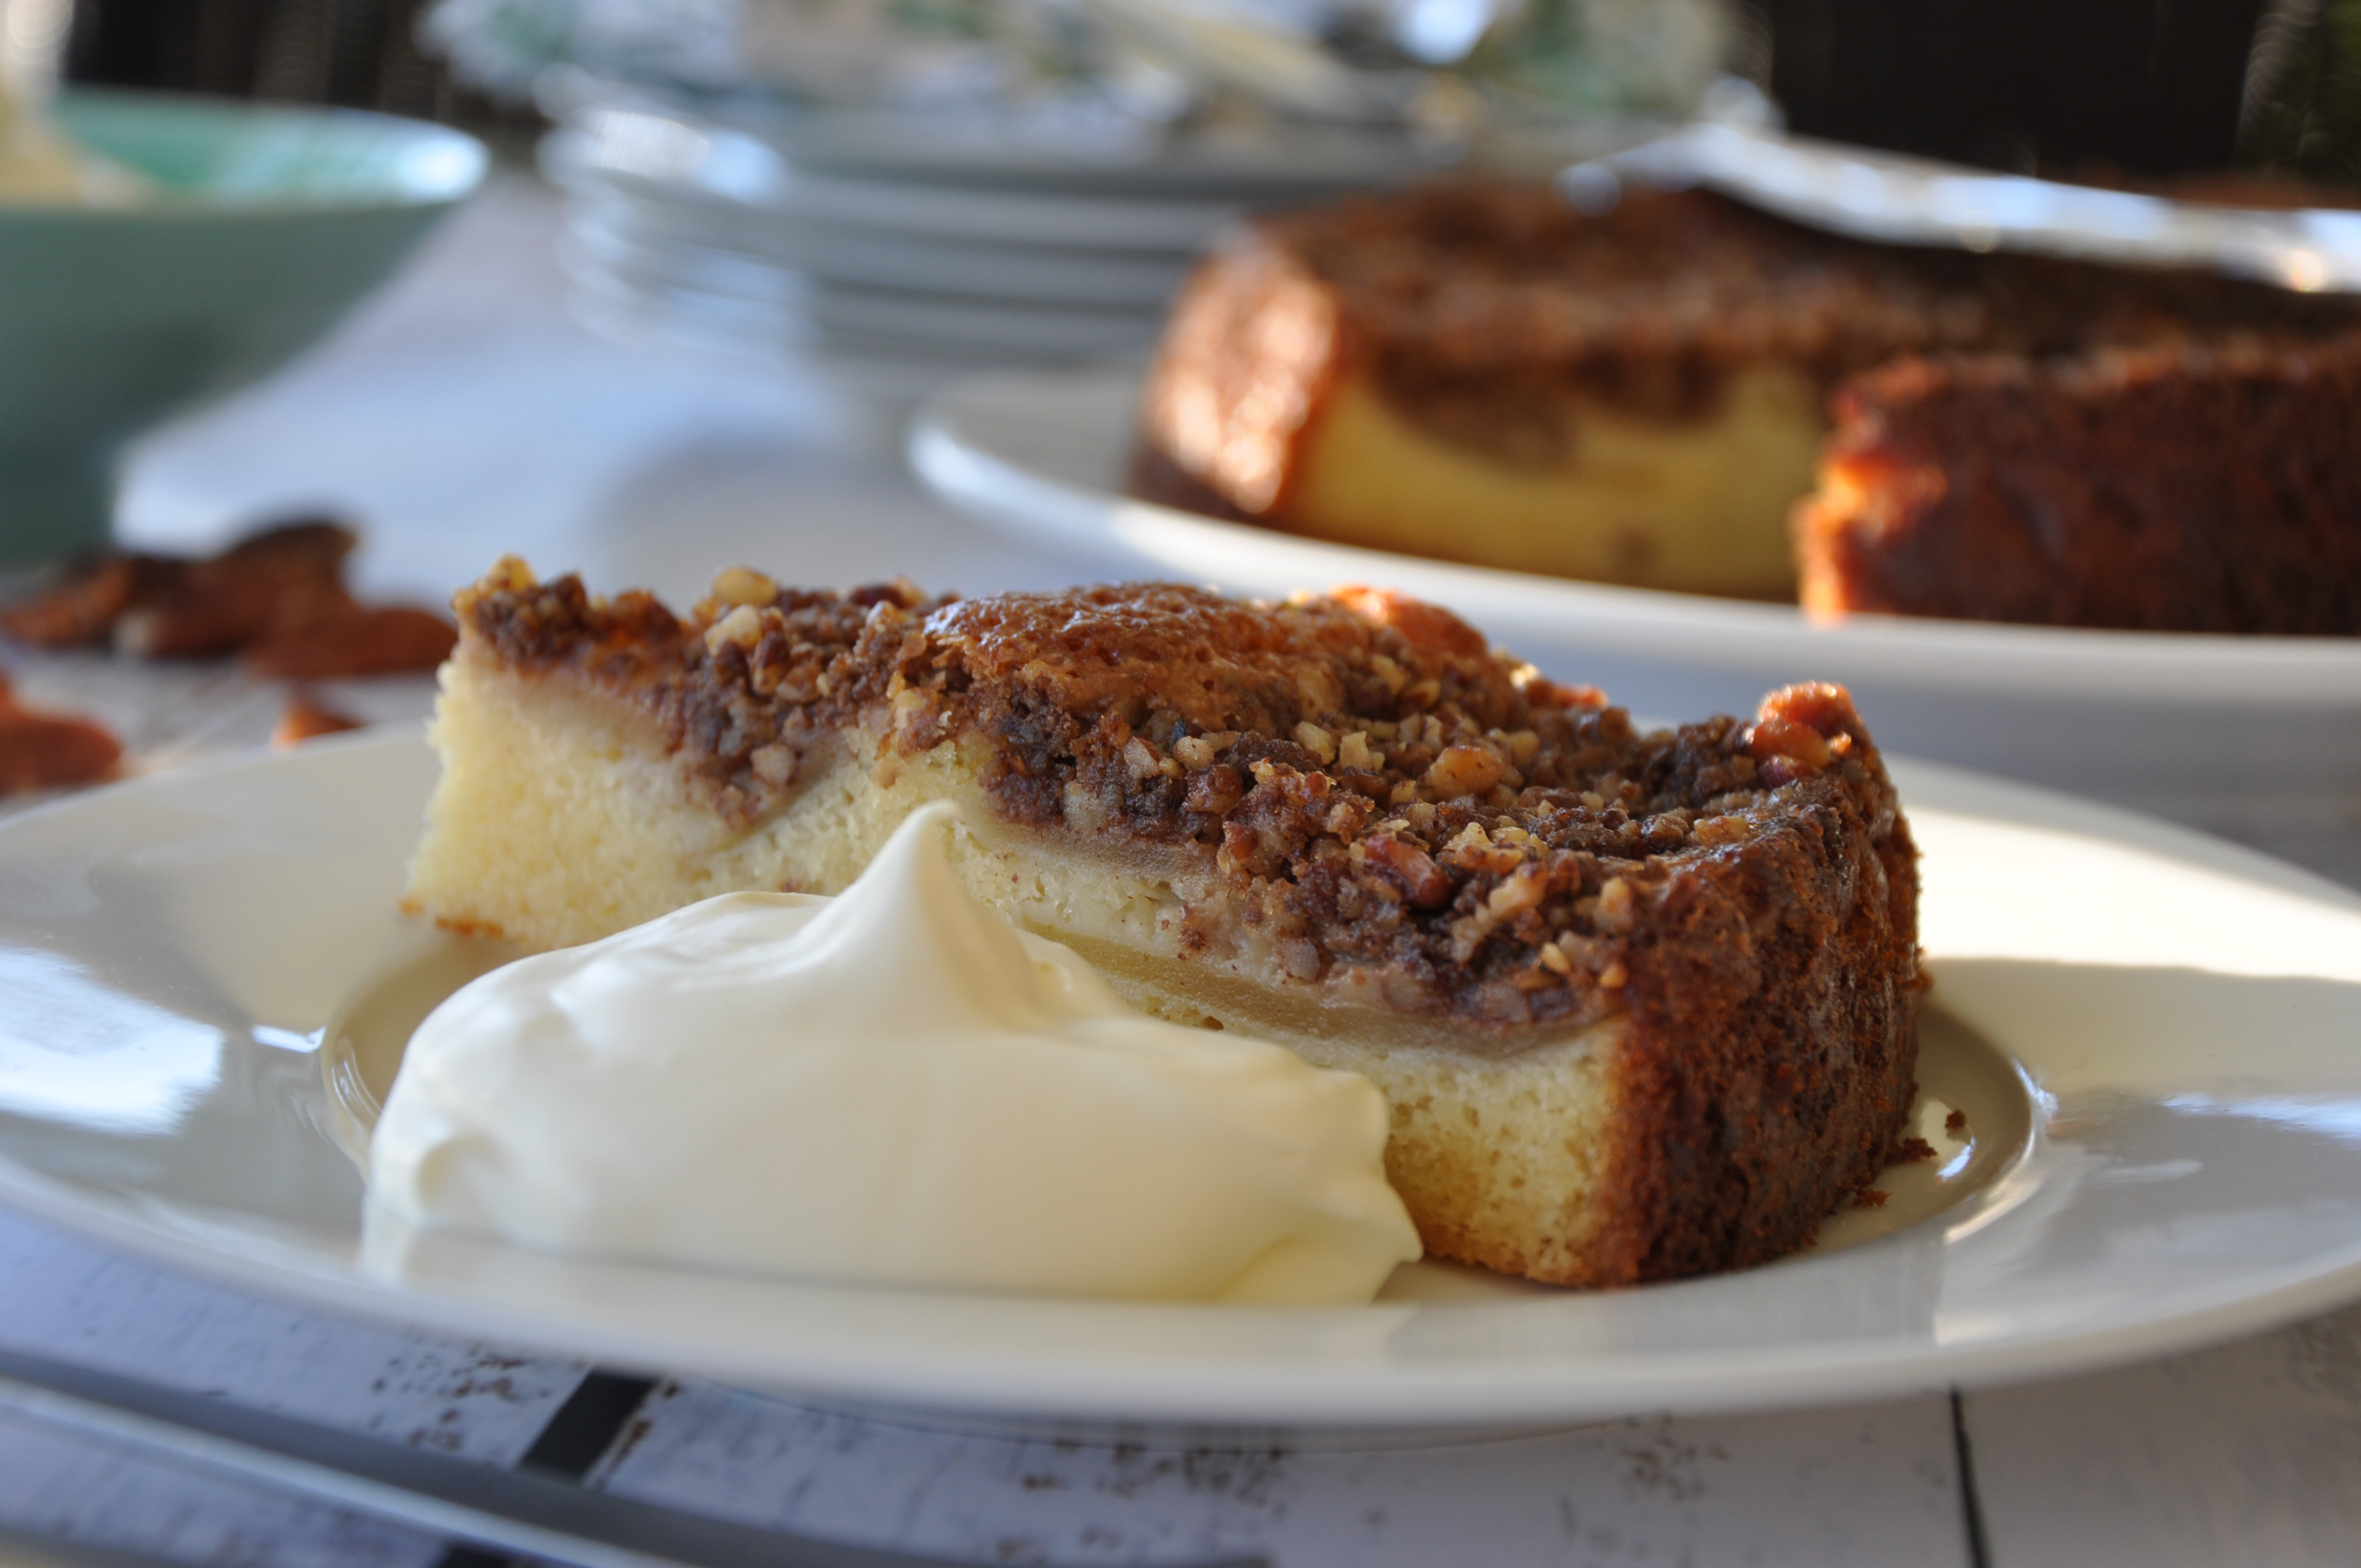 Apple pecan cake slice served on a white plate with whole cake in the background